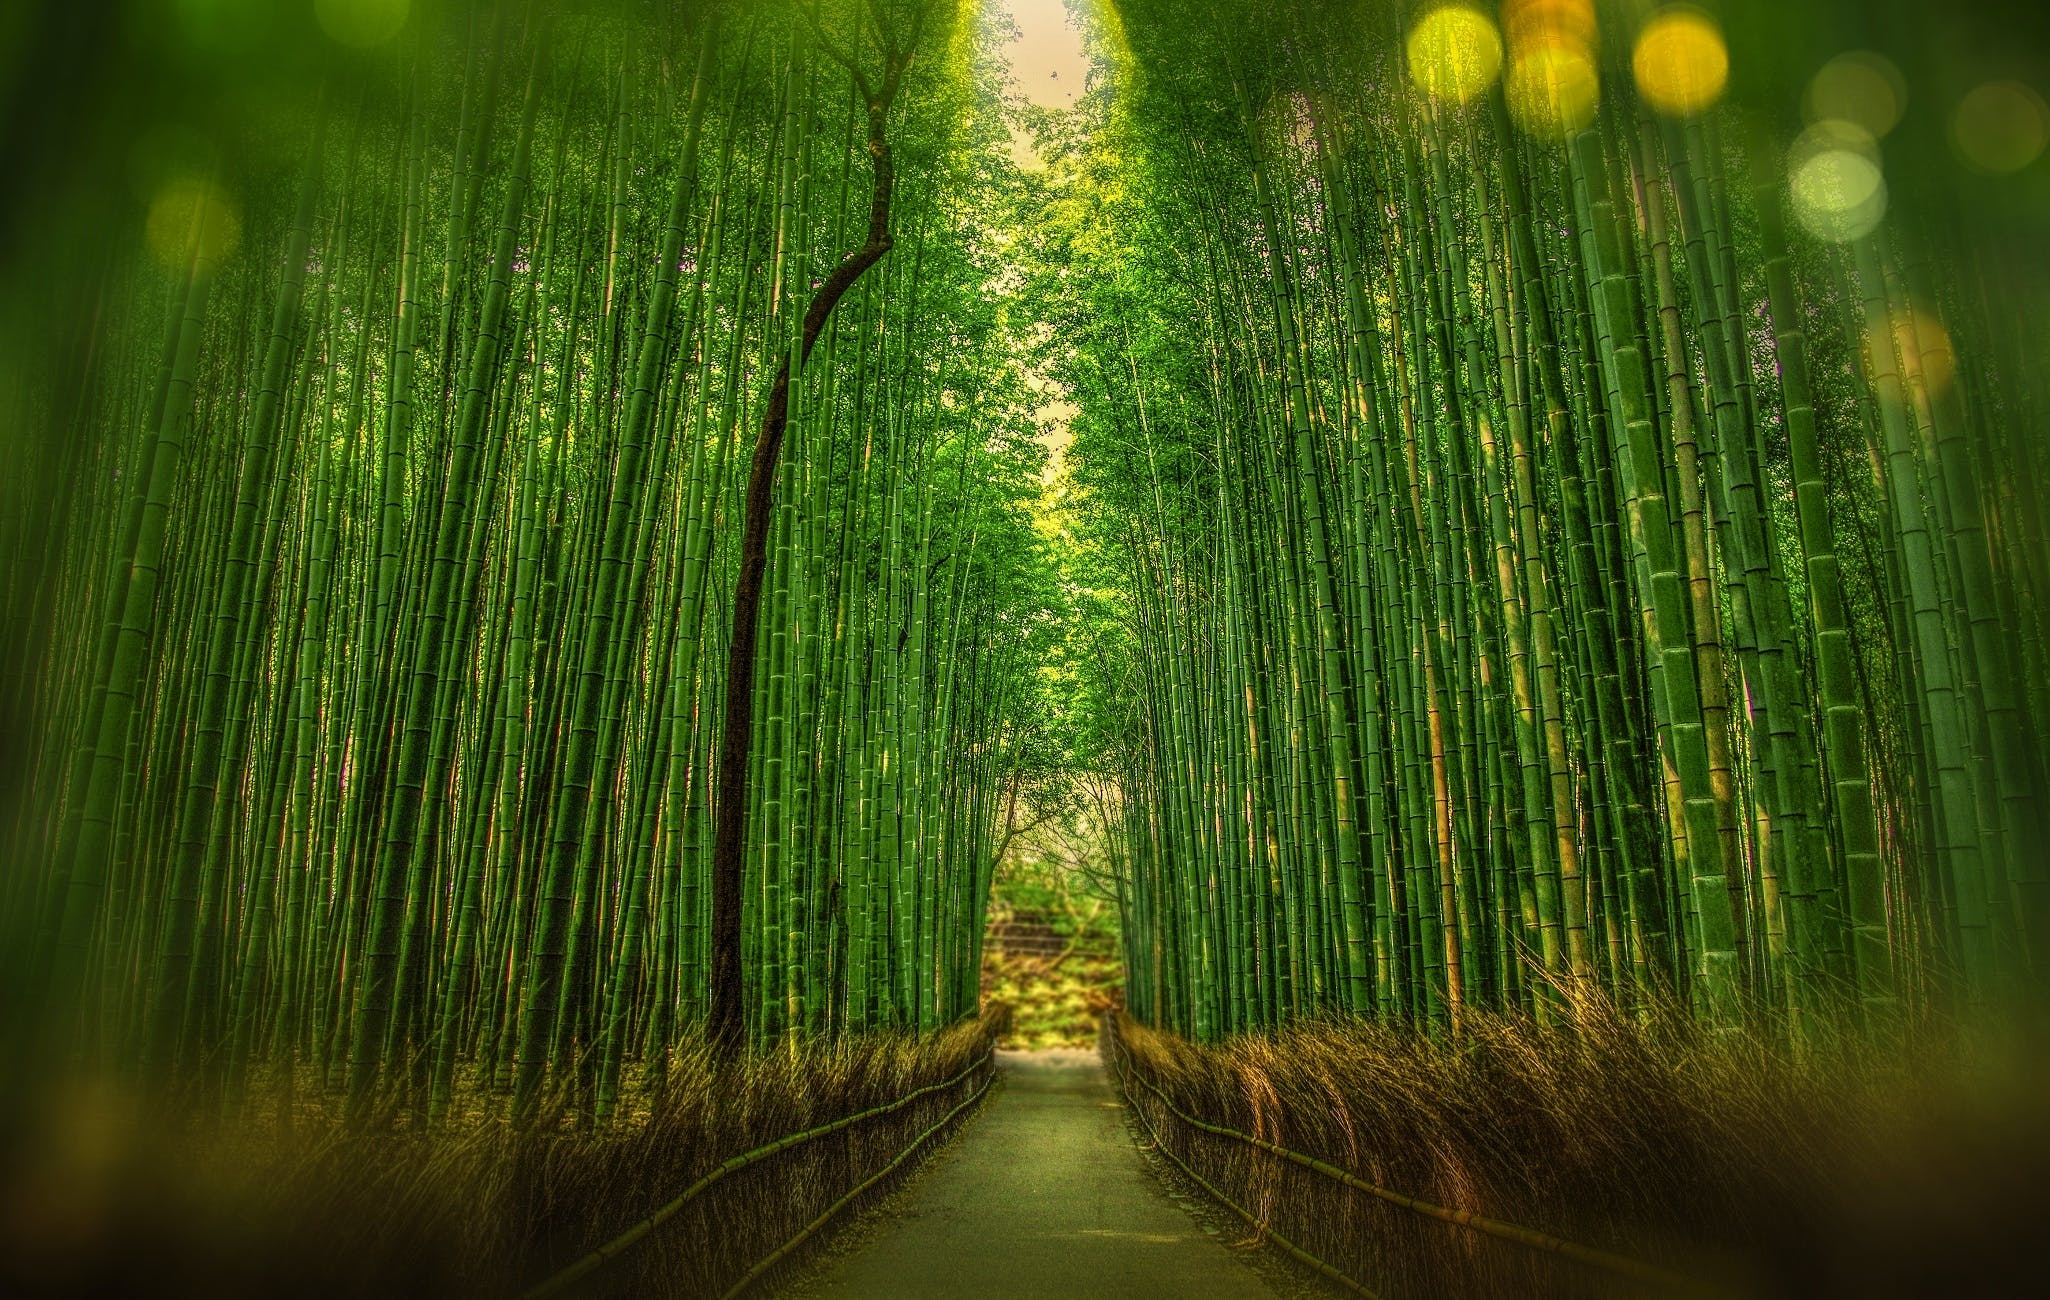 Scenic View of Bamboo Trees